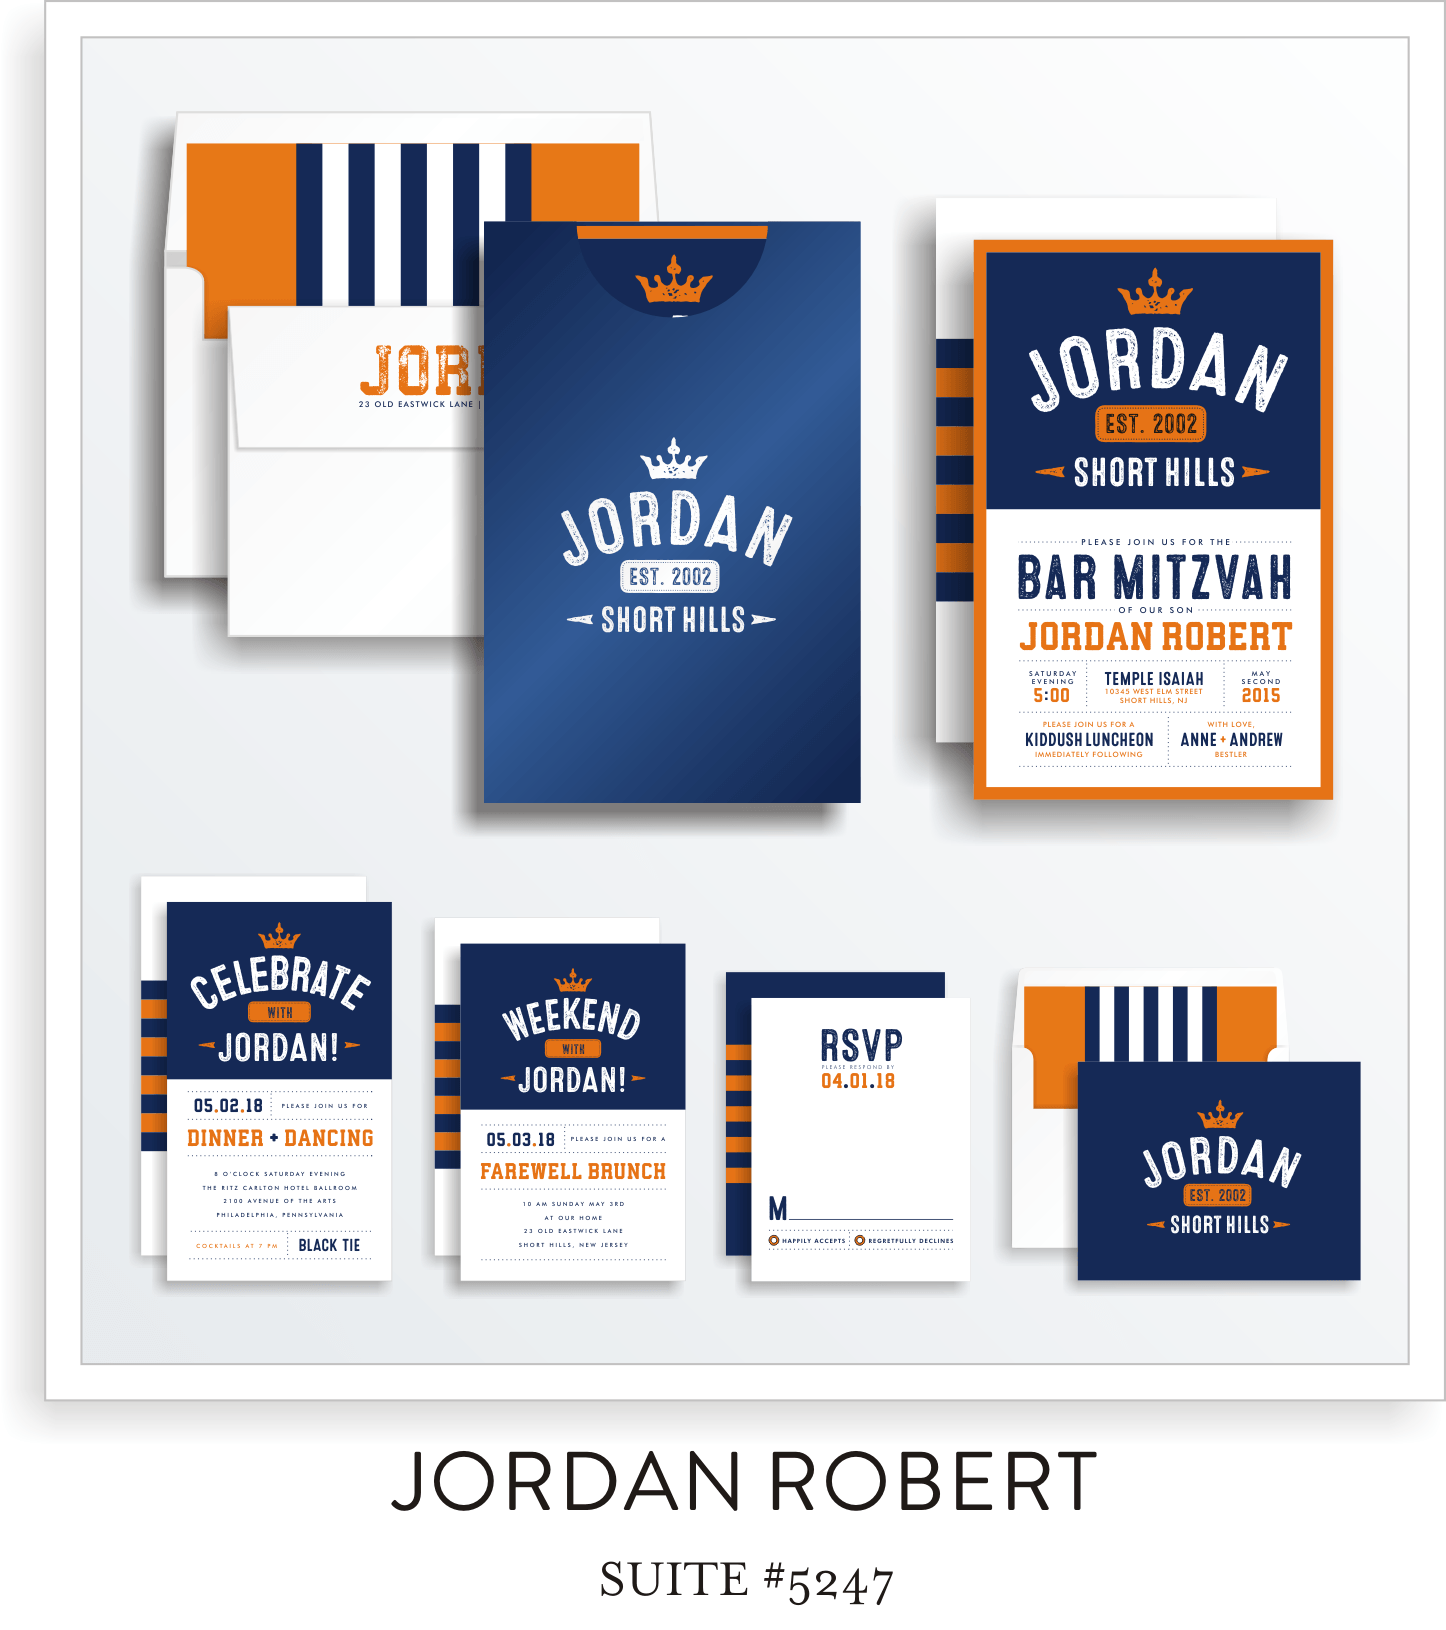 Copy of Bar Mitzvah Invitation Suite 5247 - Jordan Robert